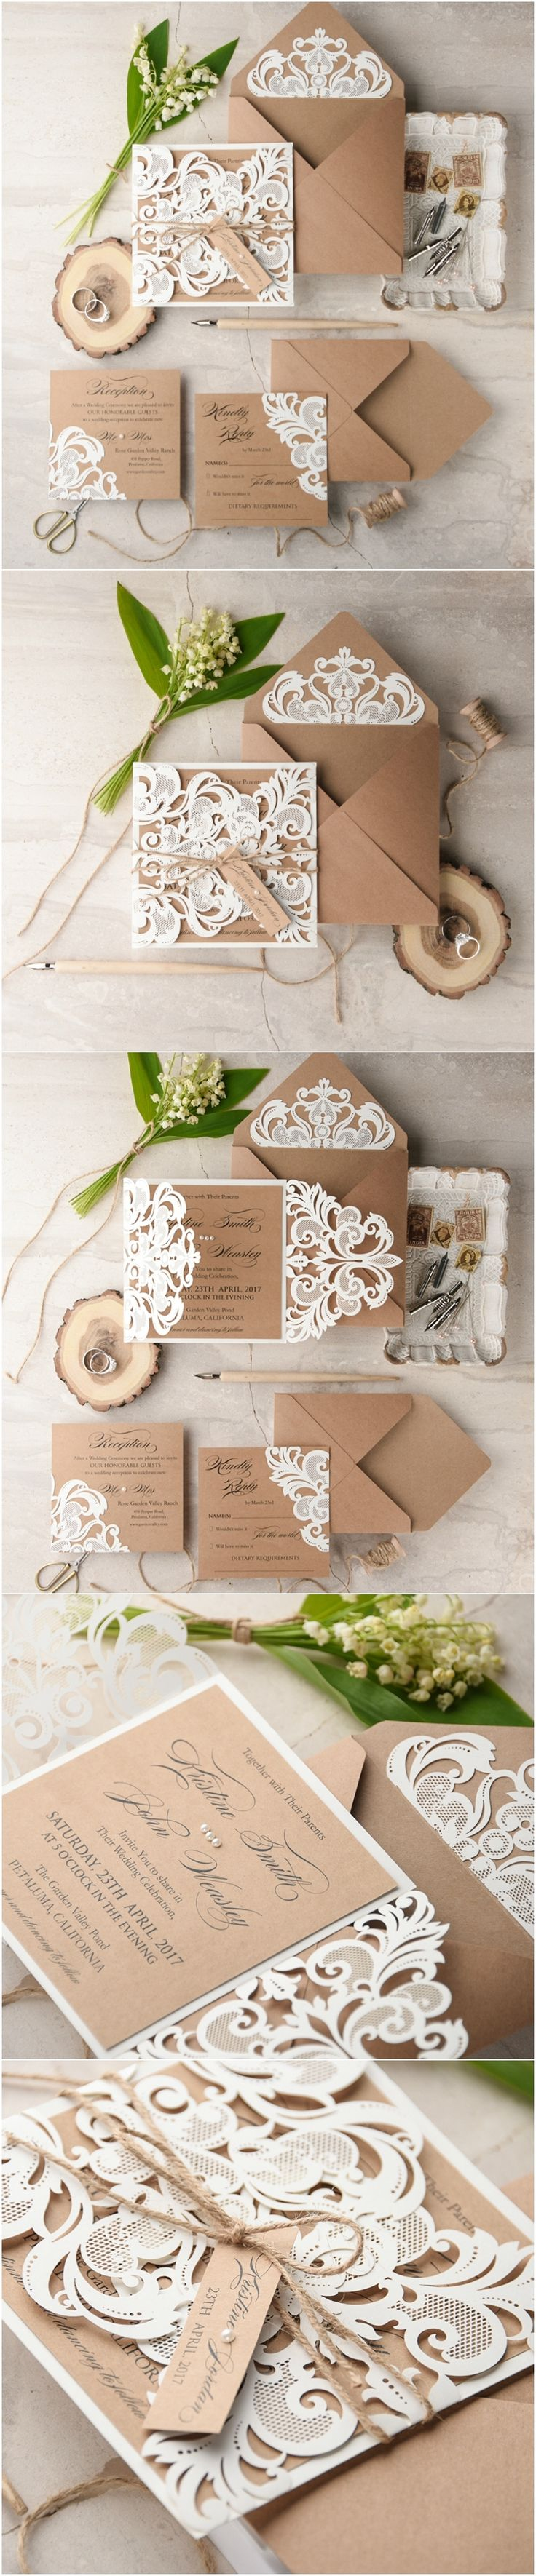 size of response cards for wedding invitations%0A Rustic Wedding Invitation Inspiration For Your Rustic Wedding